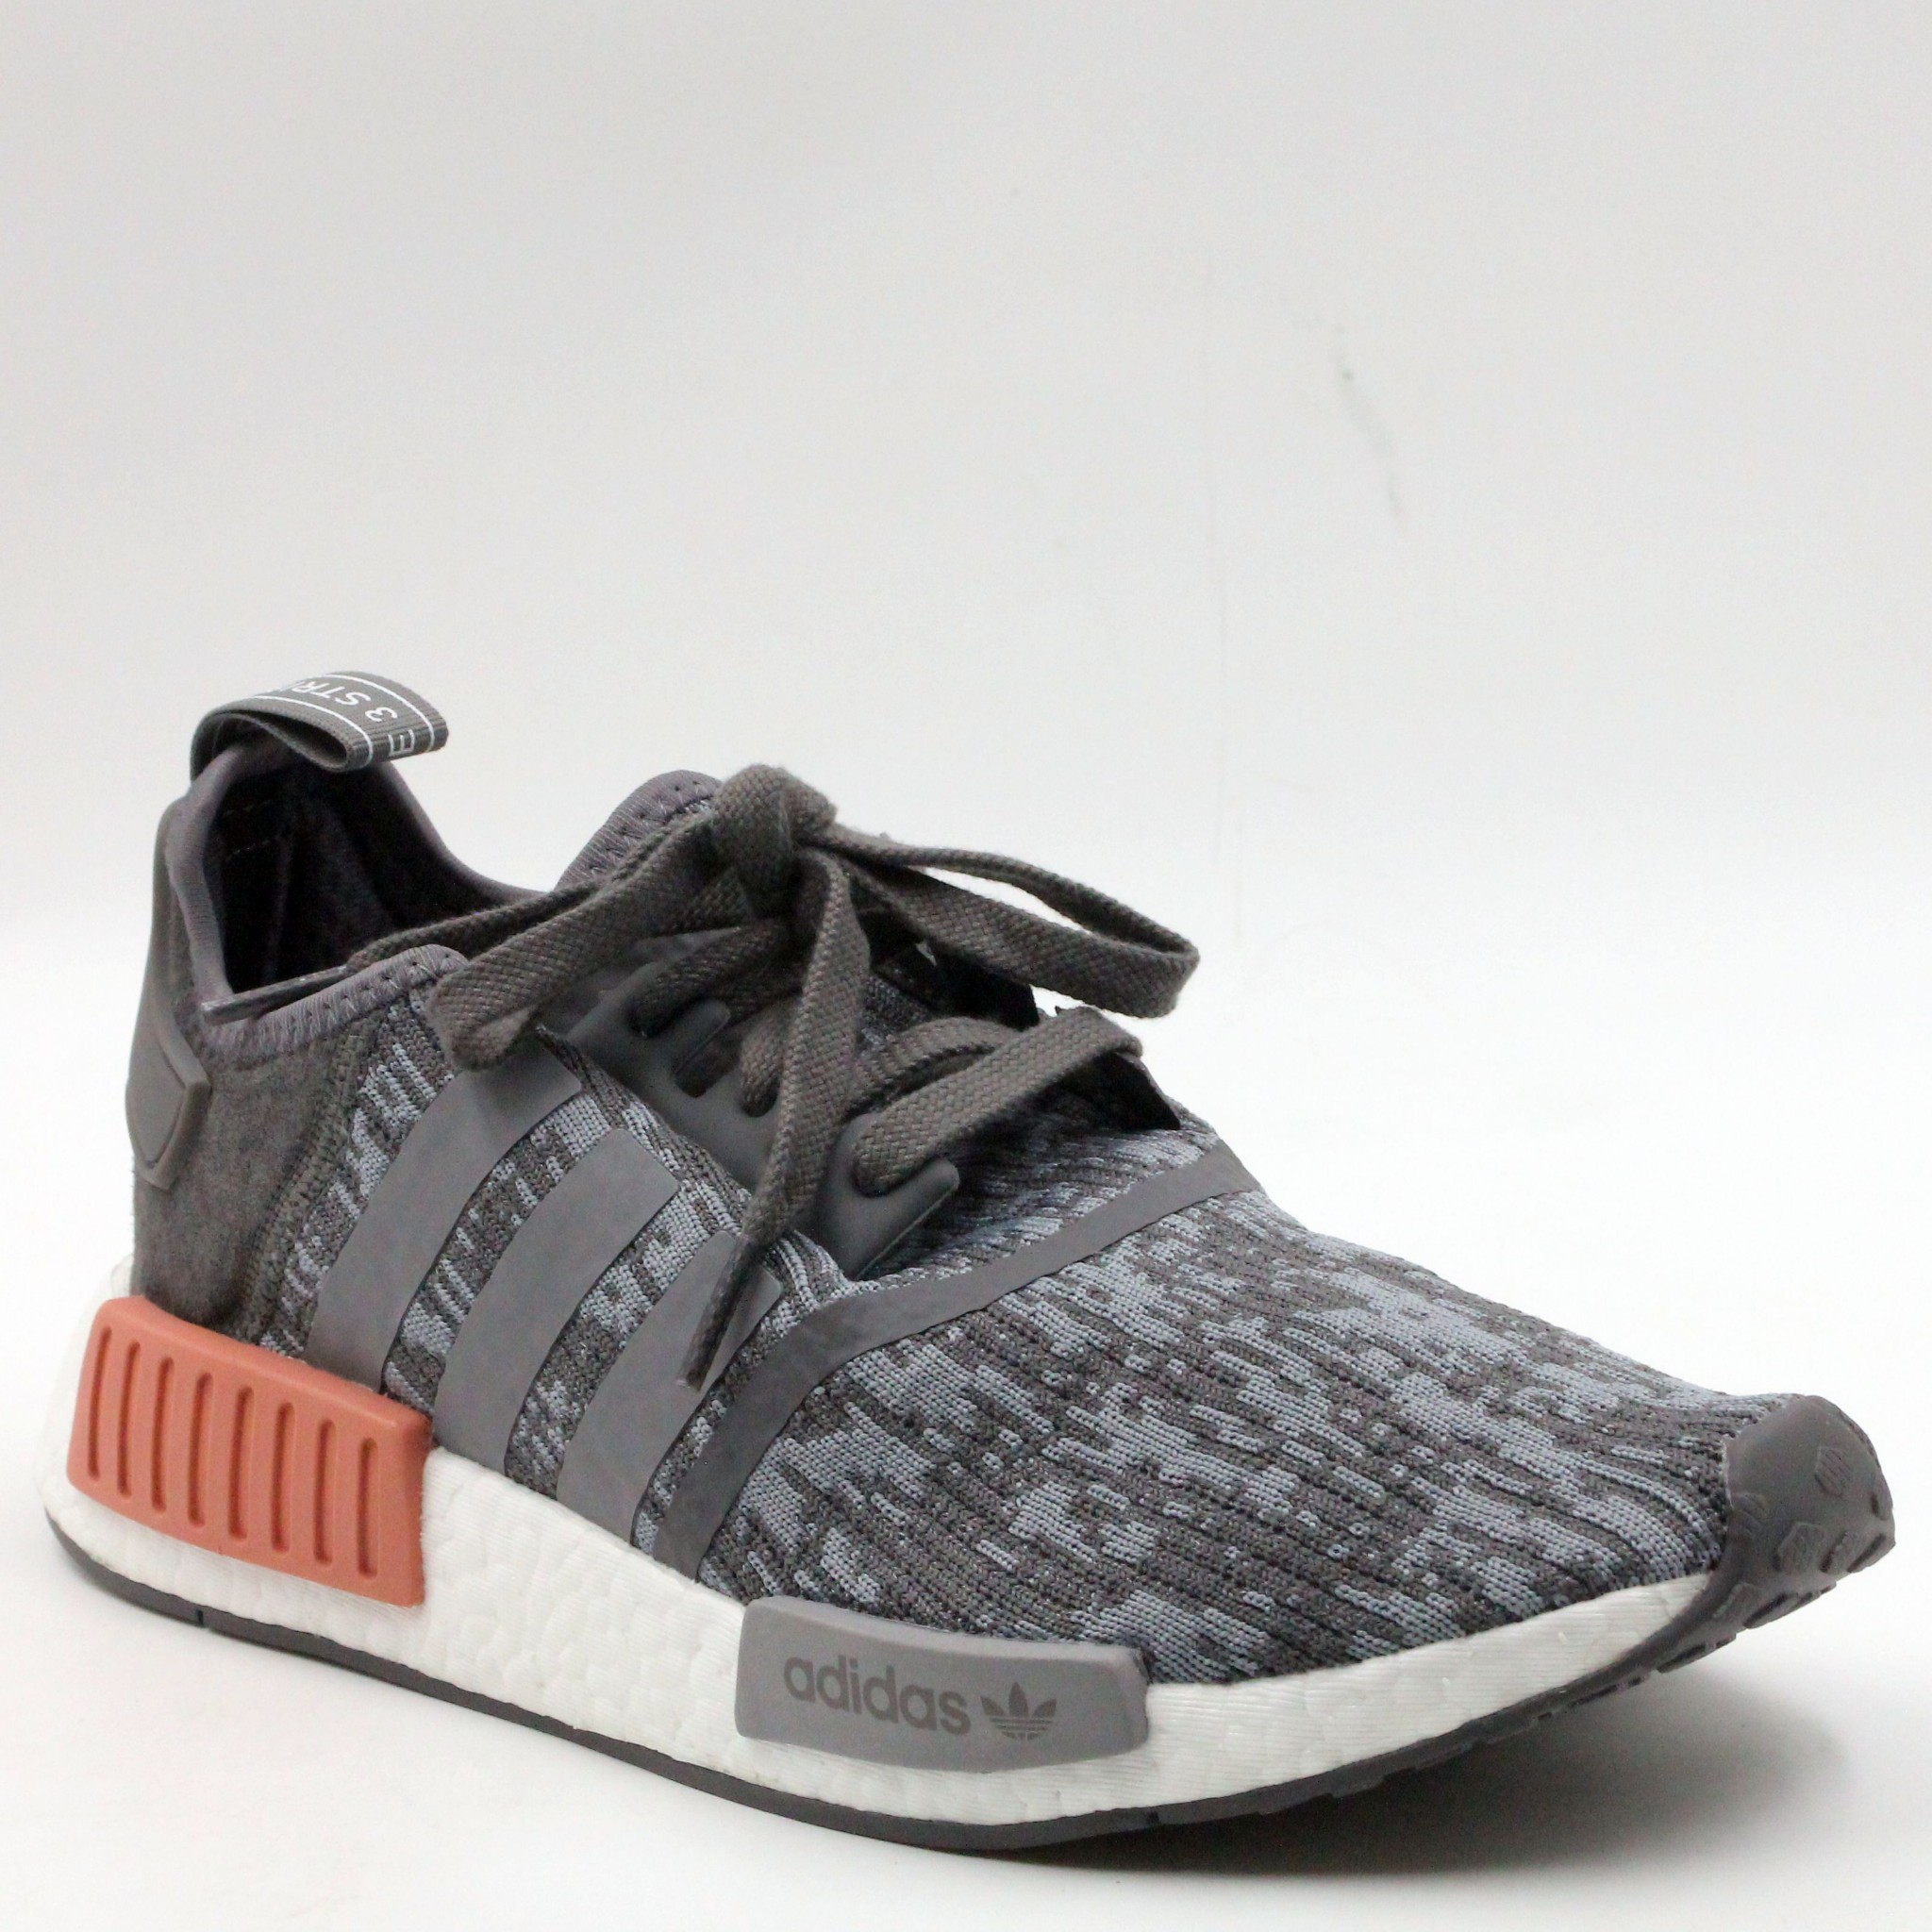 save off 1e388 e98de Details about adidas NMD_R1 Heather Grey Raw Pink Women Running Shoes US  9.5 BY9647